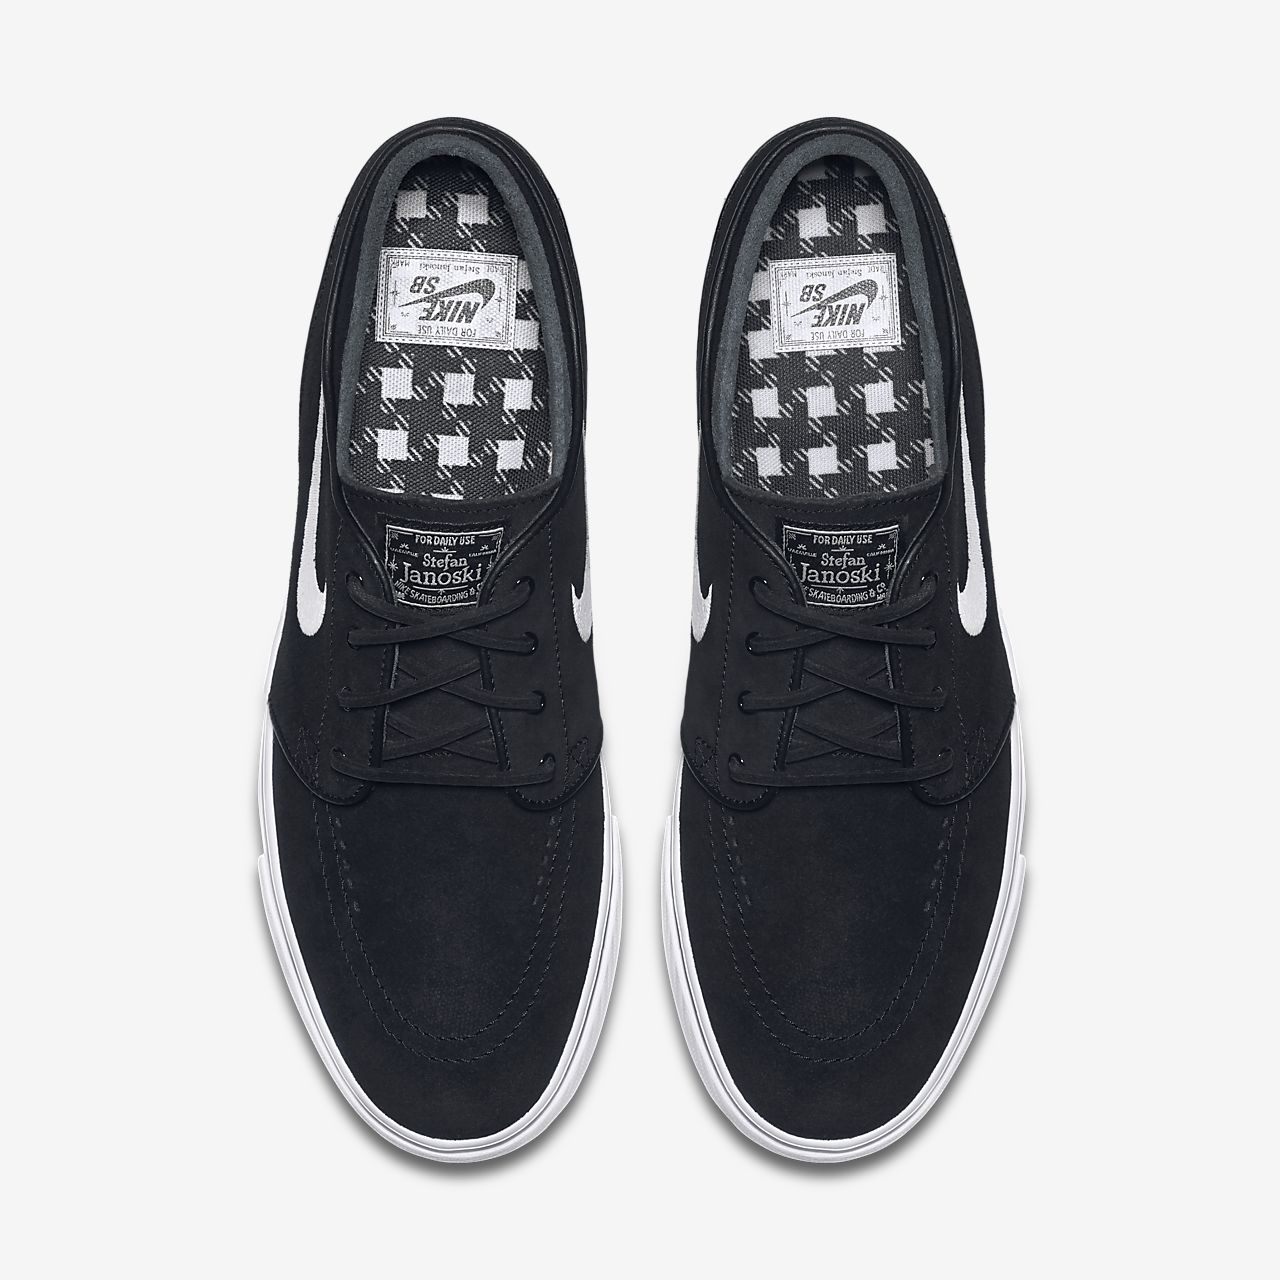 lowest price e9be5 cc444 ... Chaussure de skateboard Nike SB Zoom Stefan Janoski OG pour Homme